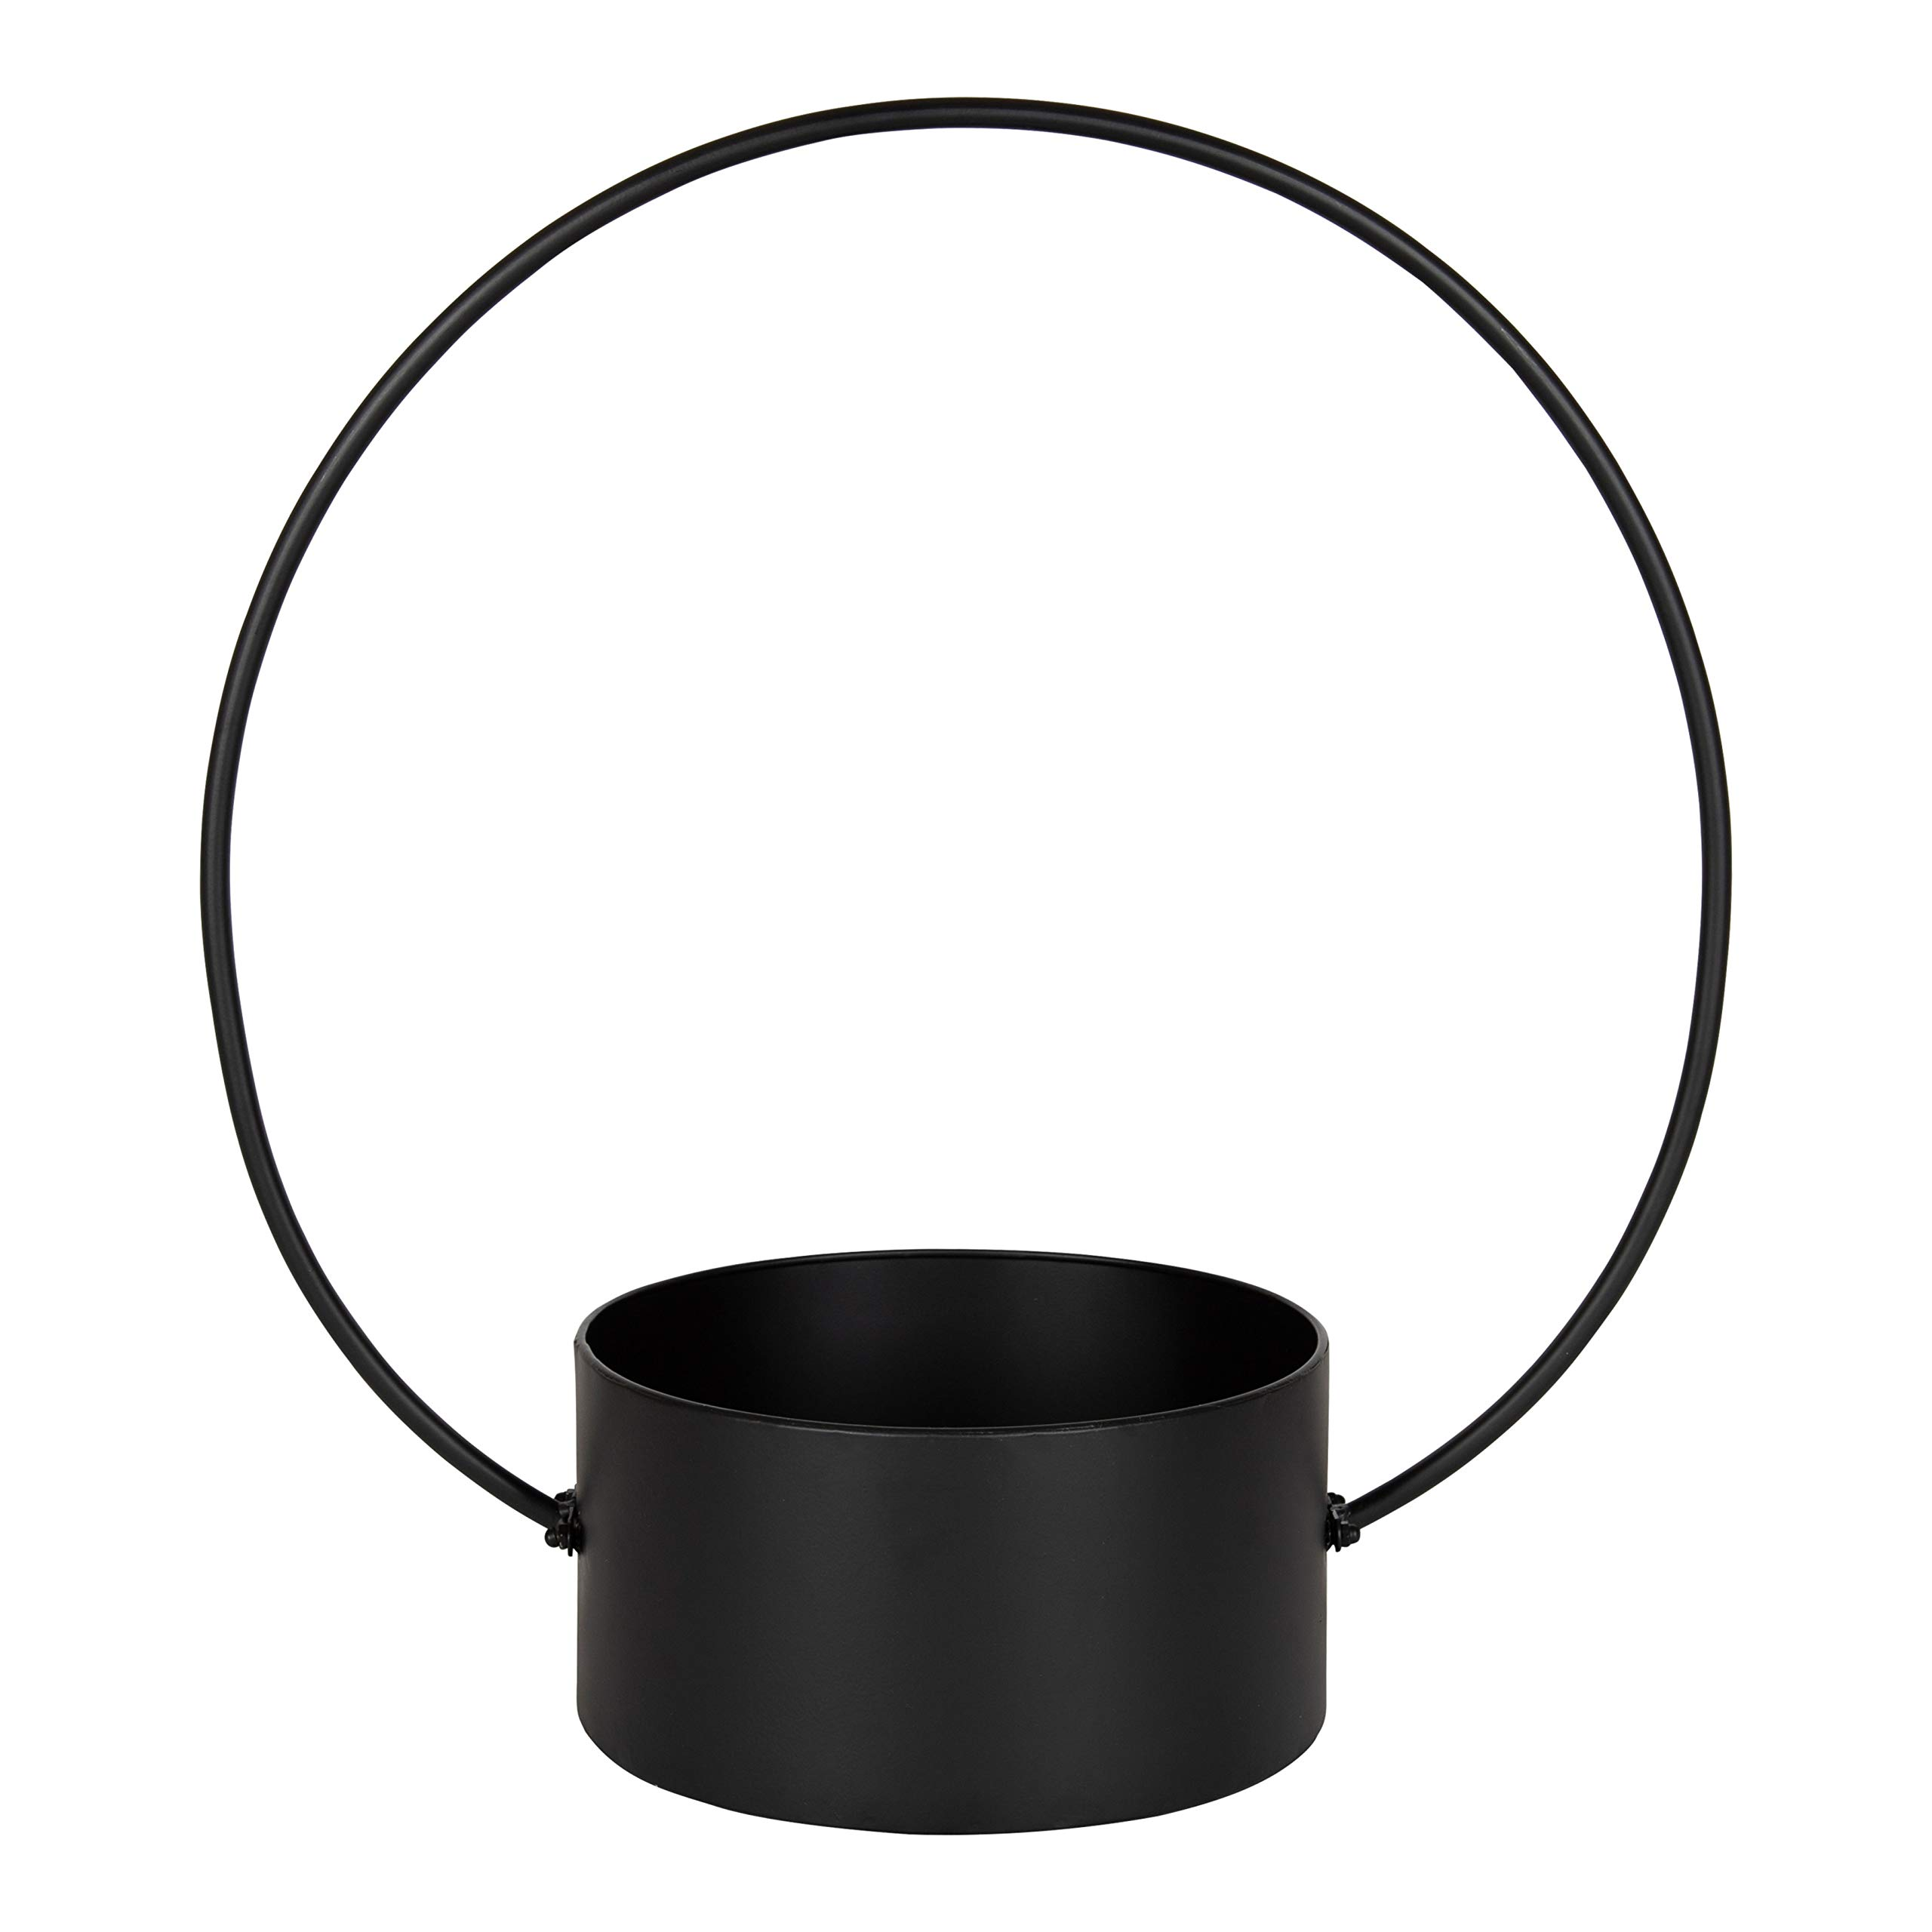 Kate and Laurel Rowbie Circular Black Metal Plant Holder for a Decorative, Minimilist, Modern Display of Indoor Plants